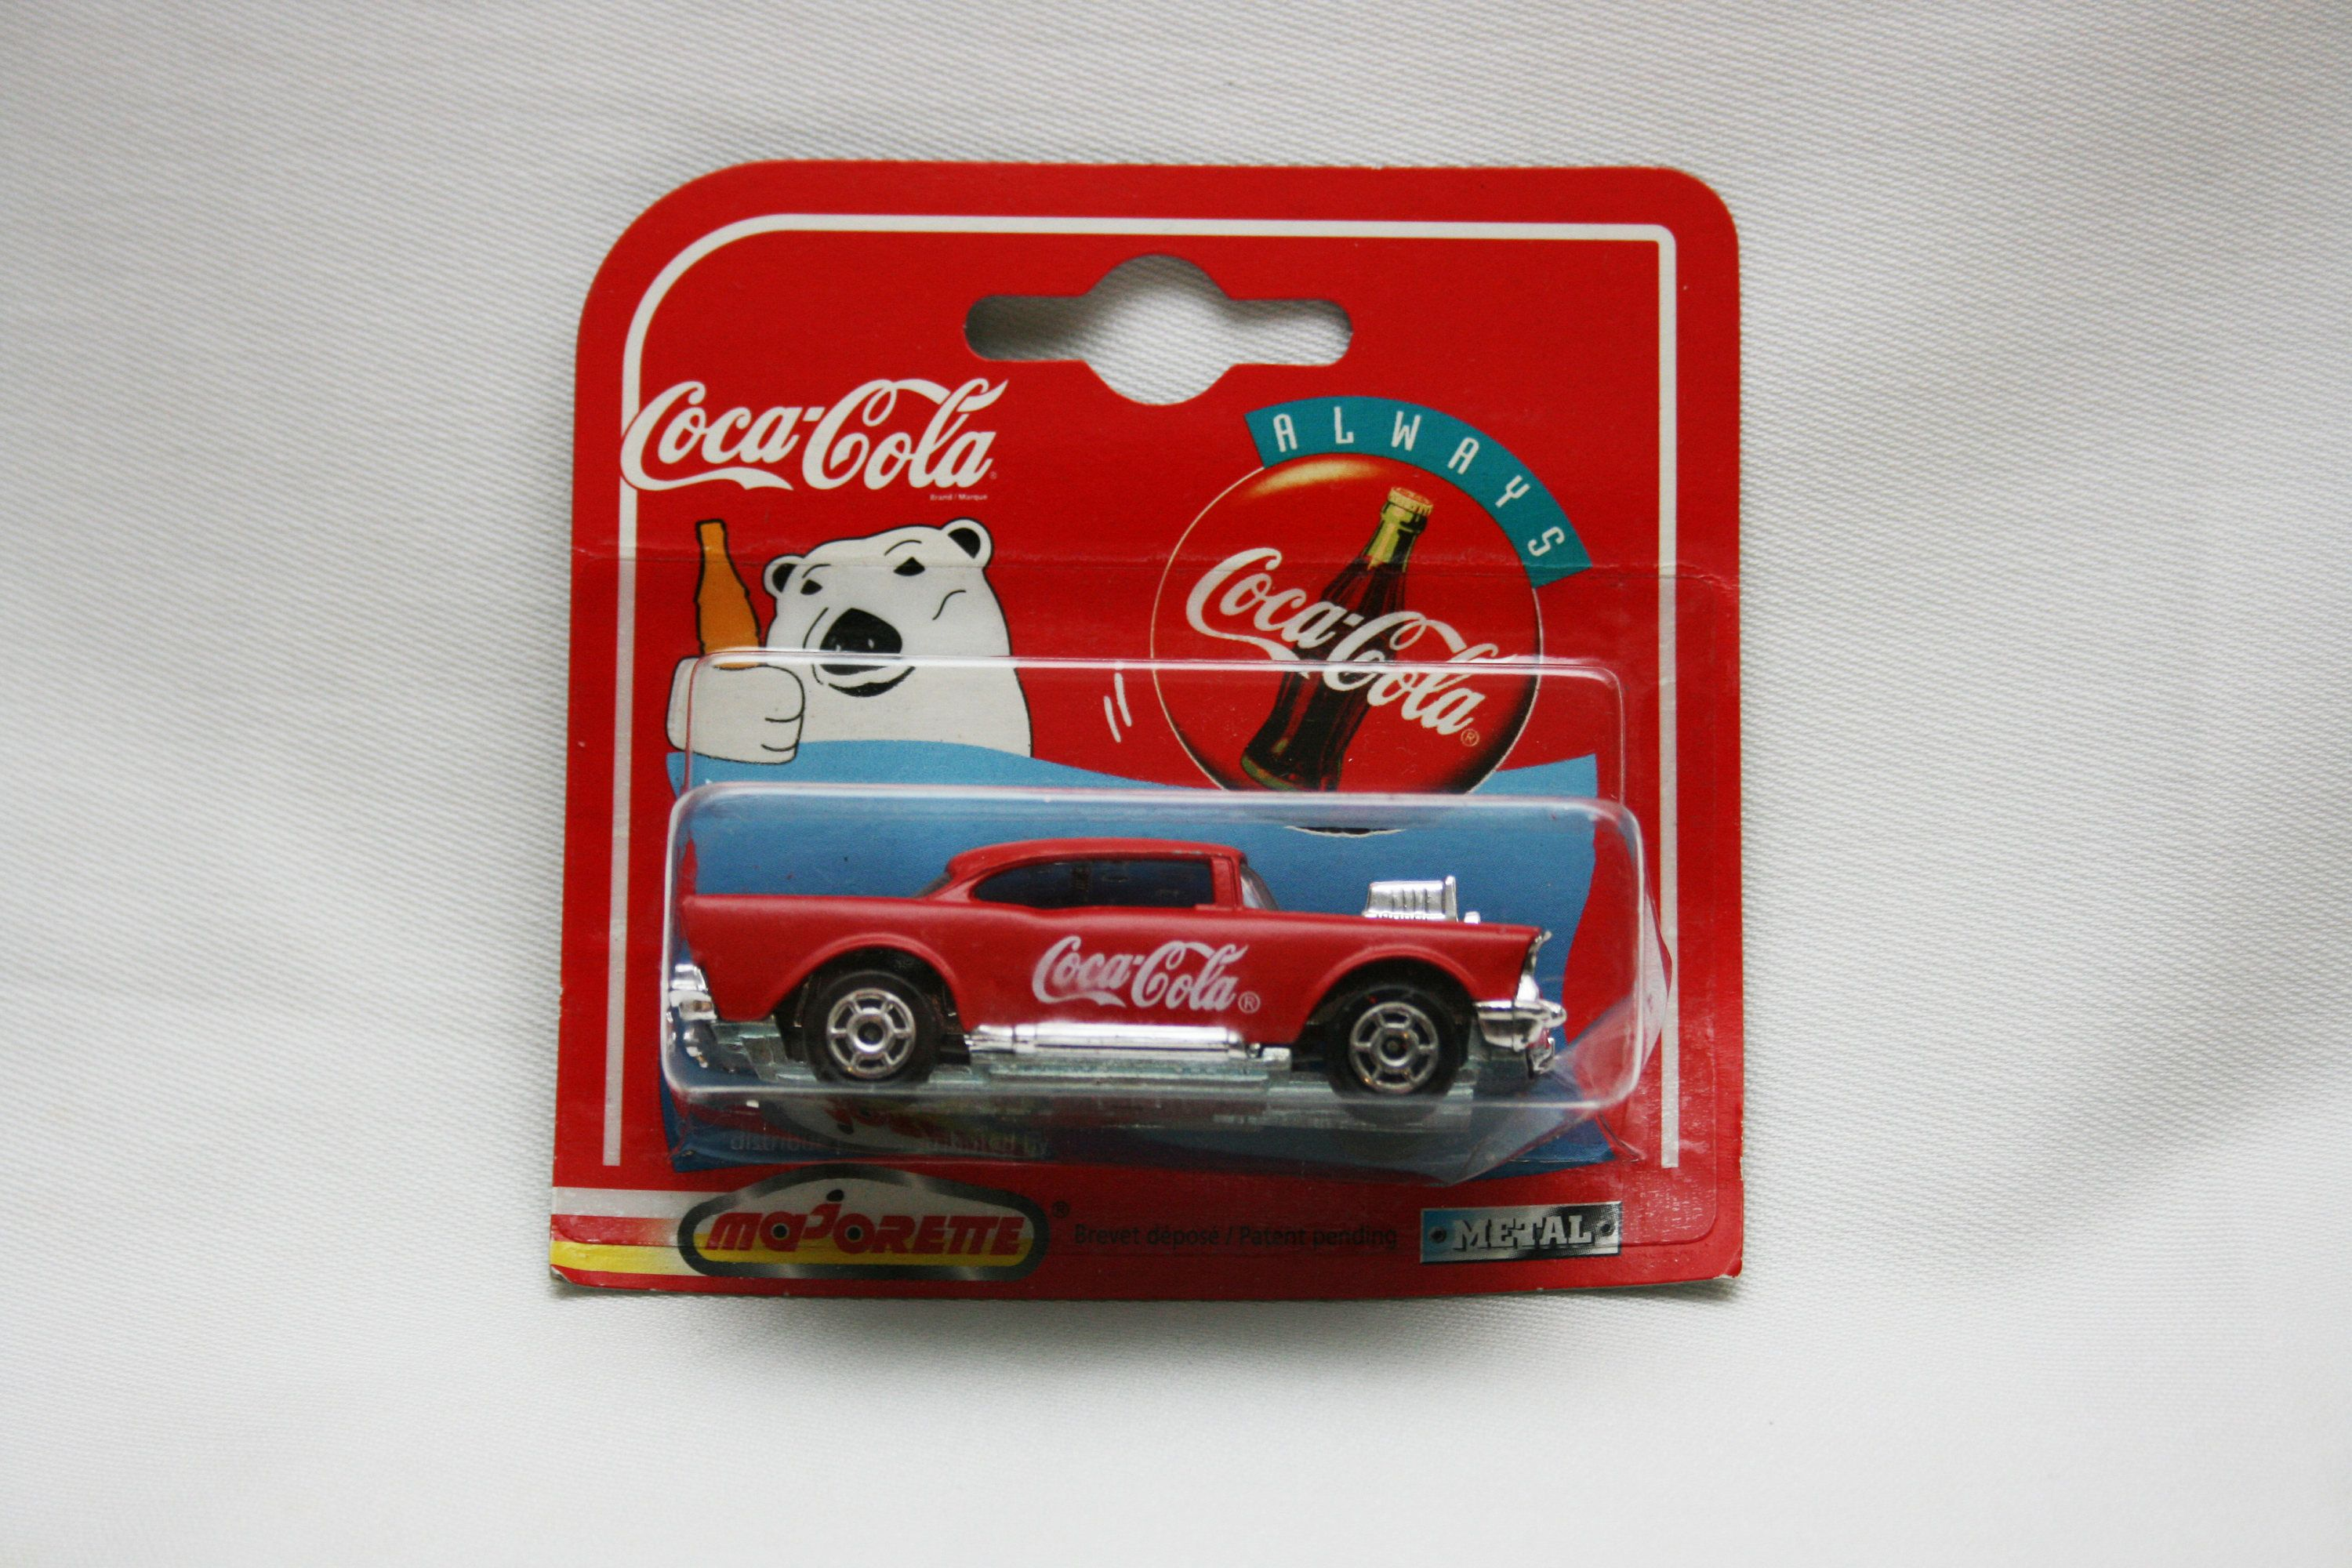 Chevy Radio 57 3 Way Switch With Pilot Light Wiring Diagram Vintage Coca Cola Grill 223 1 64 Scale Majorette 200 Series Die Cast Metal Coke Racing Car Hot Wheels Matchbox By Kattscuriocabinet On